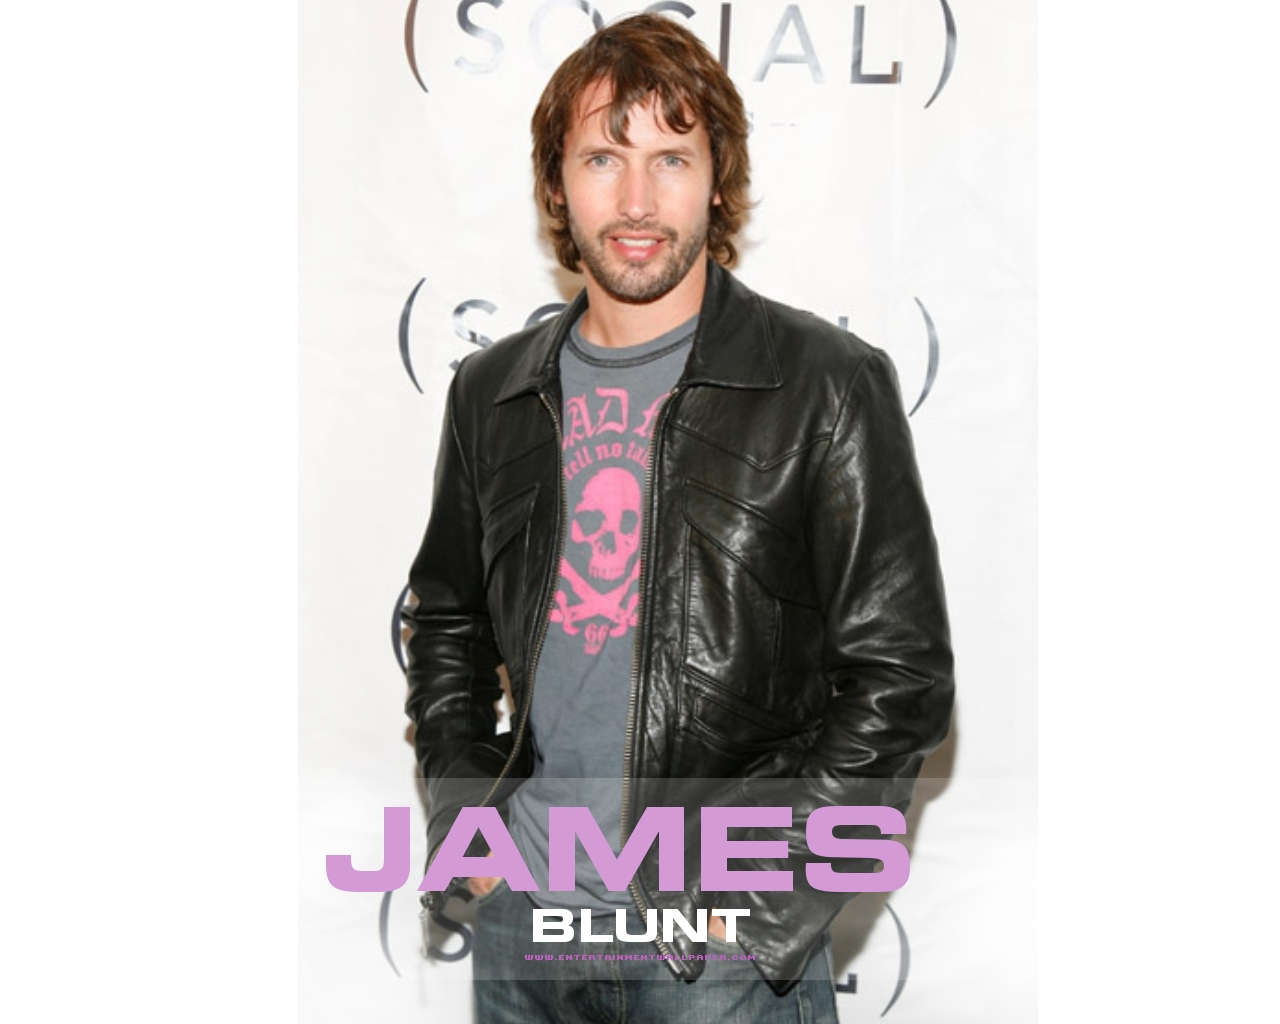 james blunt James blunt had an unusual route to pop stardom a champion skier educated at the exclusive harrow school, he was a captain in the british army and served in kosovo before leaving in 2002 to embark on his music career.